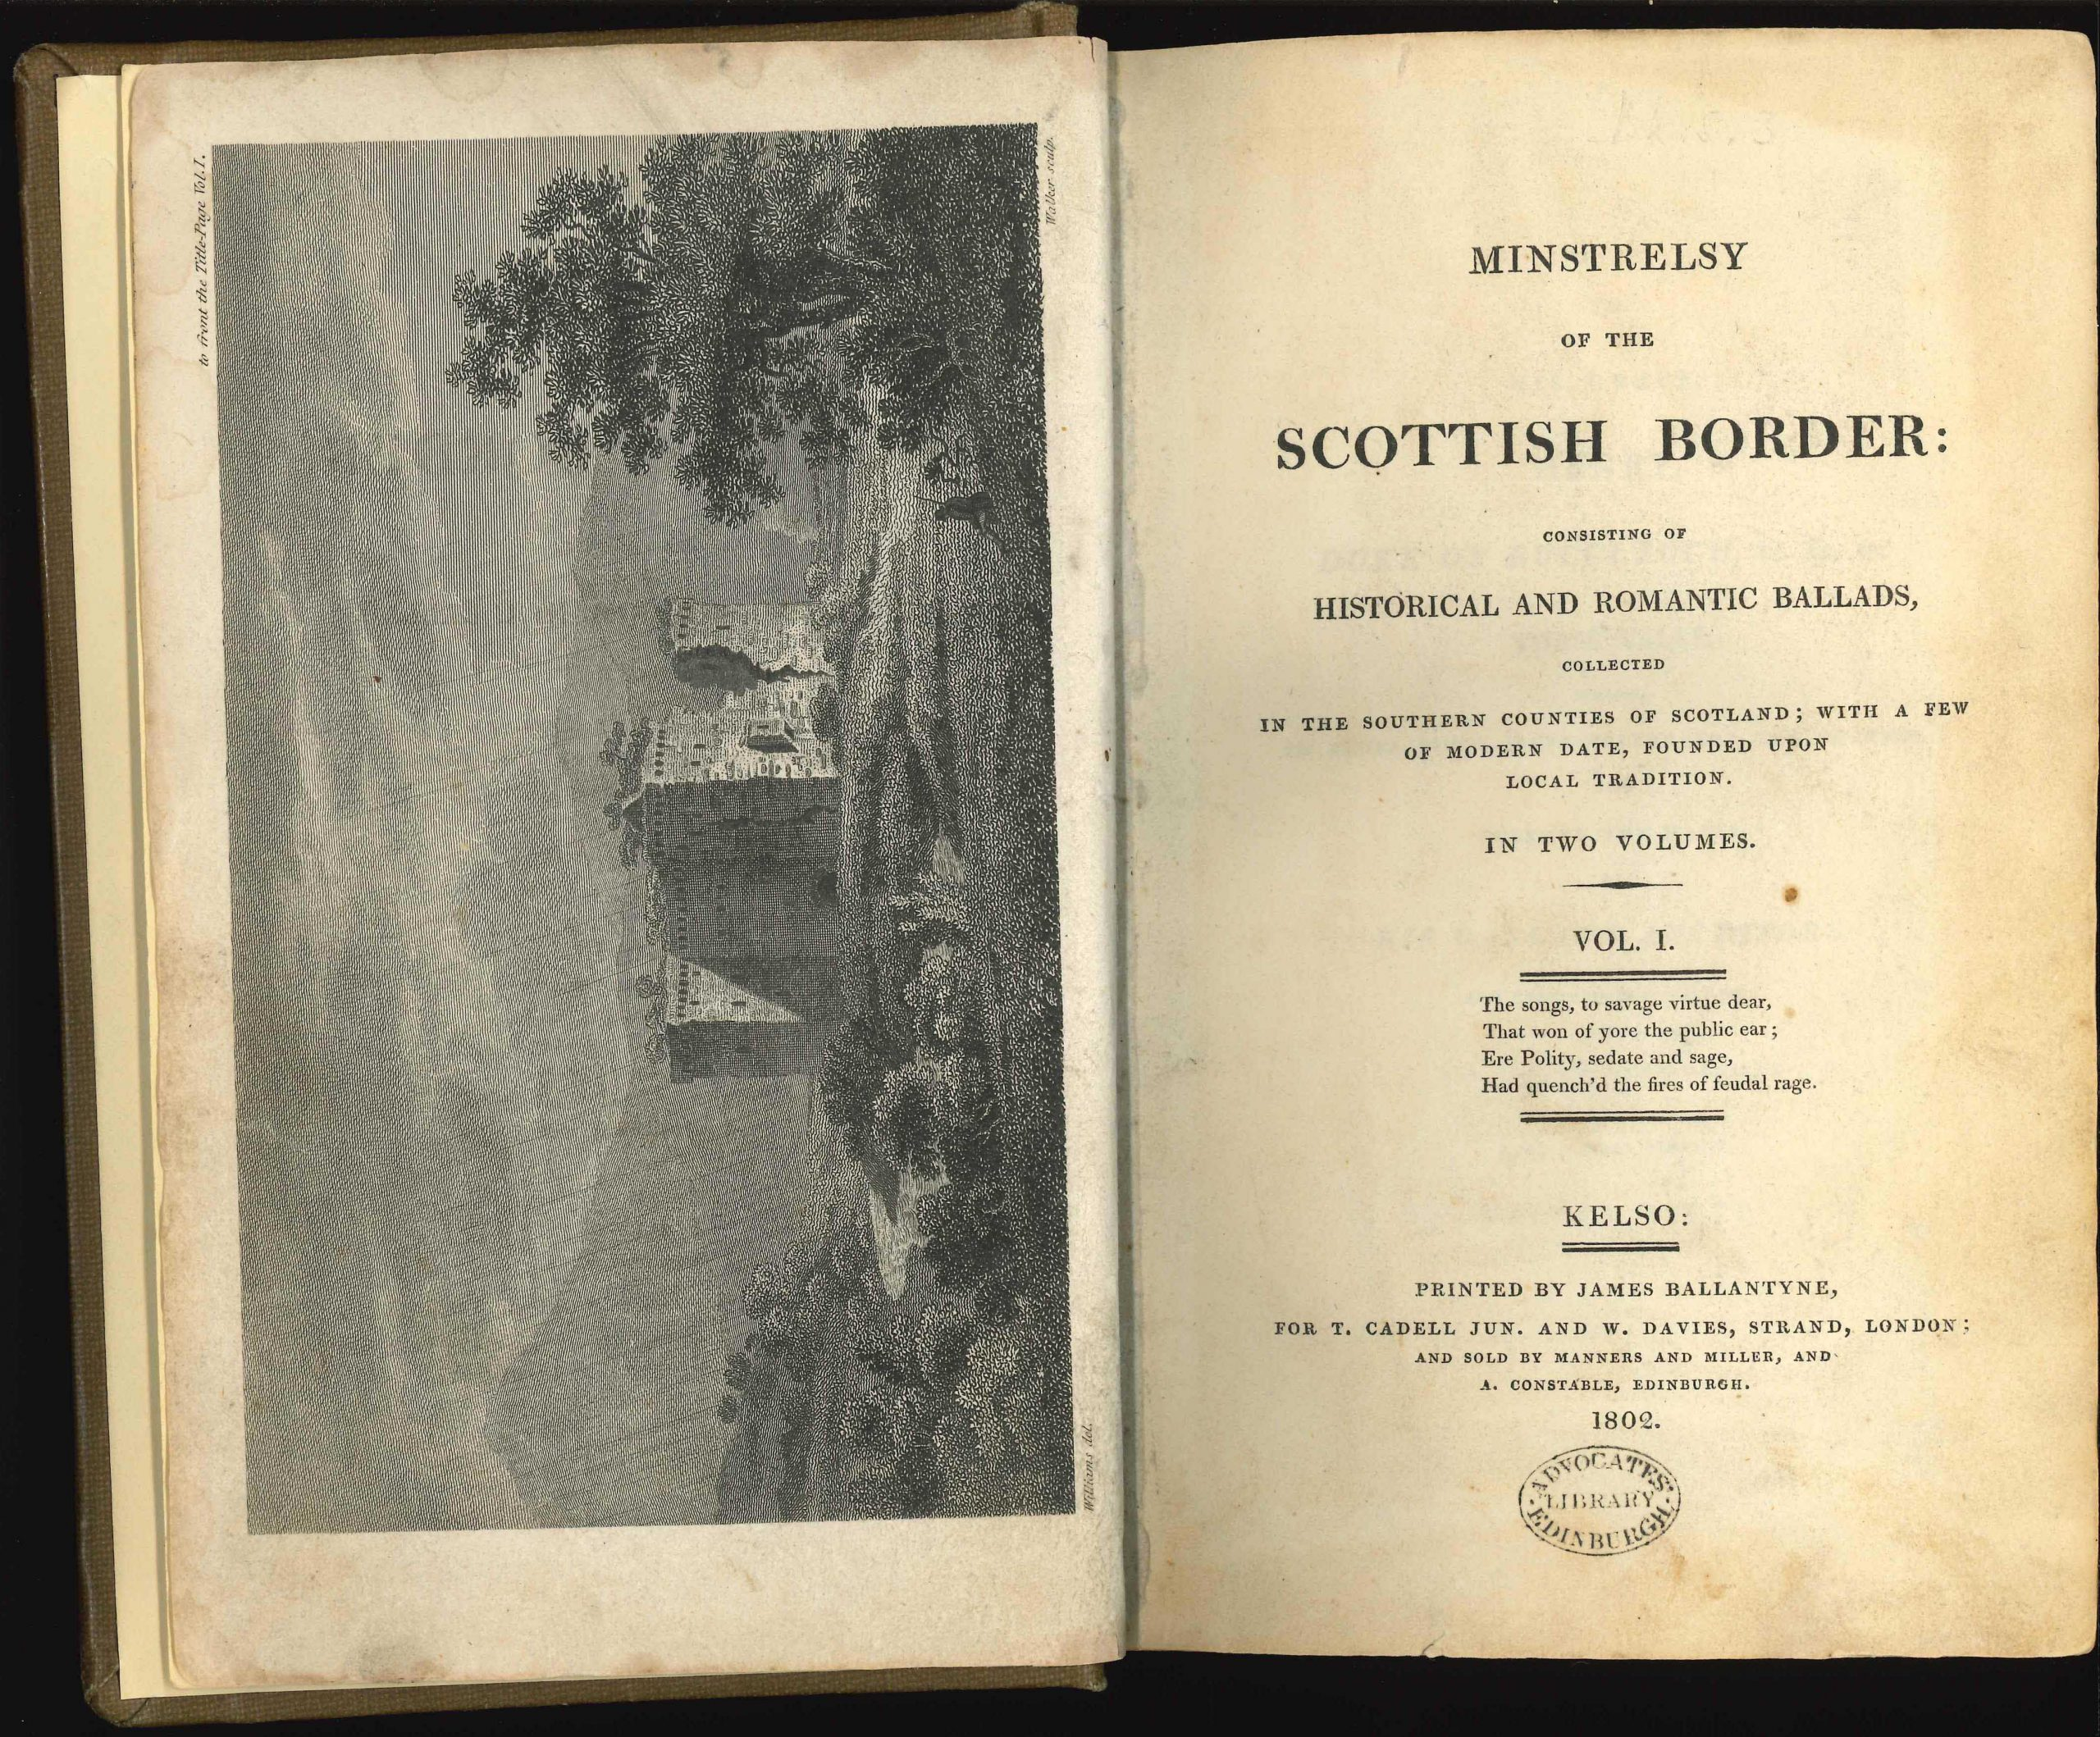 First edition of Minstrelsy